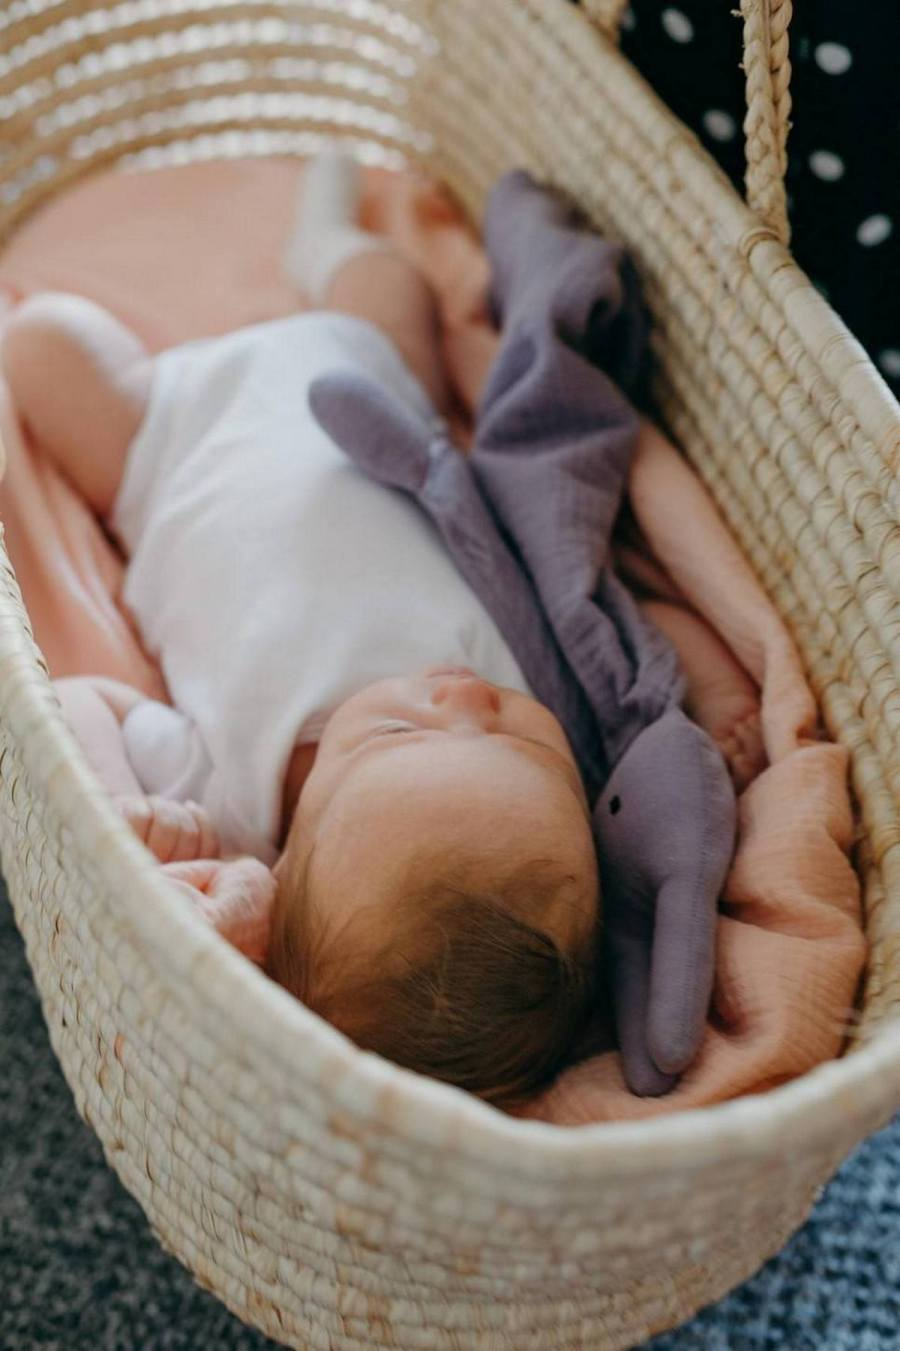 Frequently, parents ask if a comfort blanket or toy can help their baby or toddler sleep better and feel more secure. The simple answer is yes, for many babies they are very useful indeed.